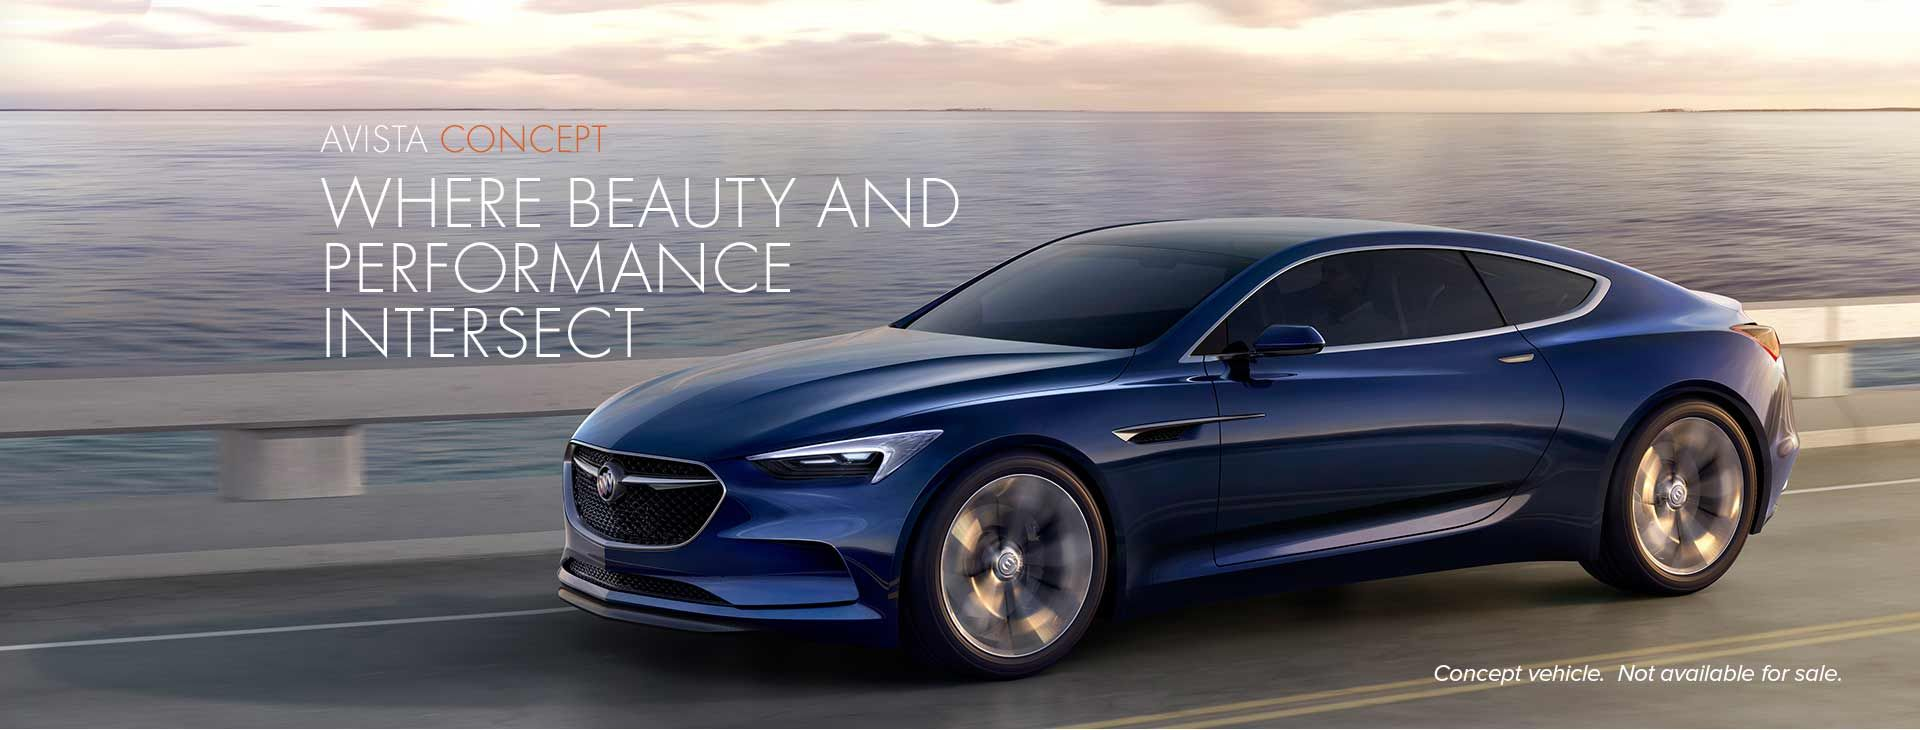 The Buick Avista Concept Vehicle Was Designed To Embody The Combination Of Beauty And Performance Buick Avista Concept Cars